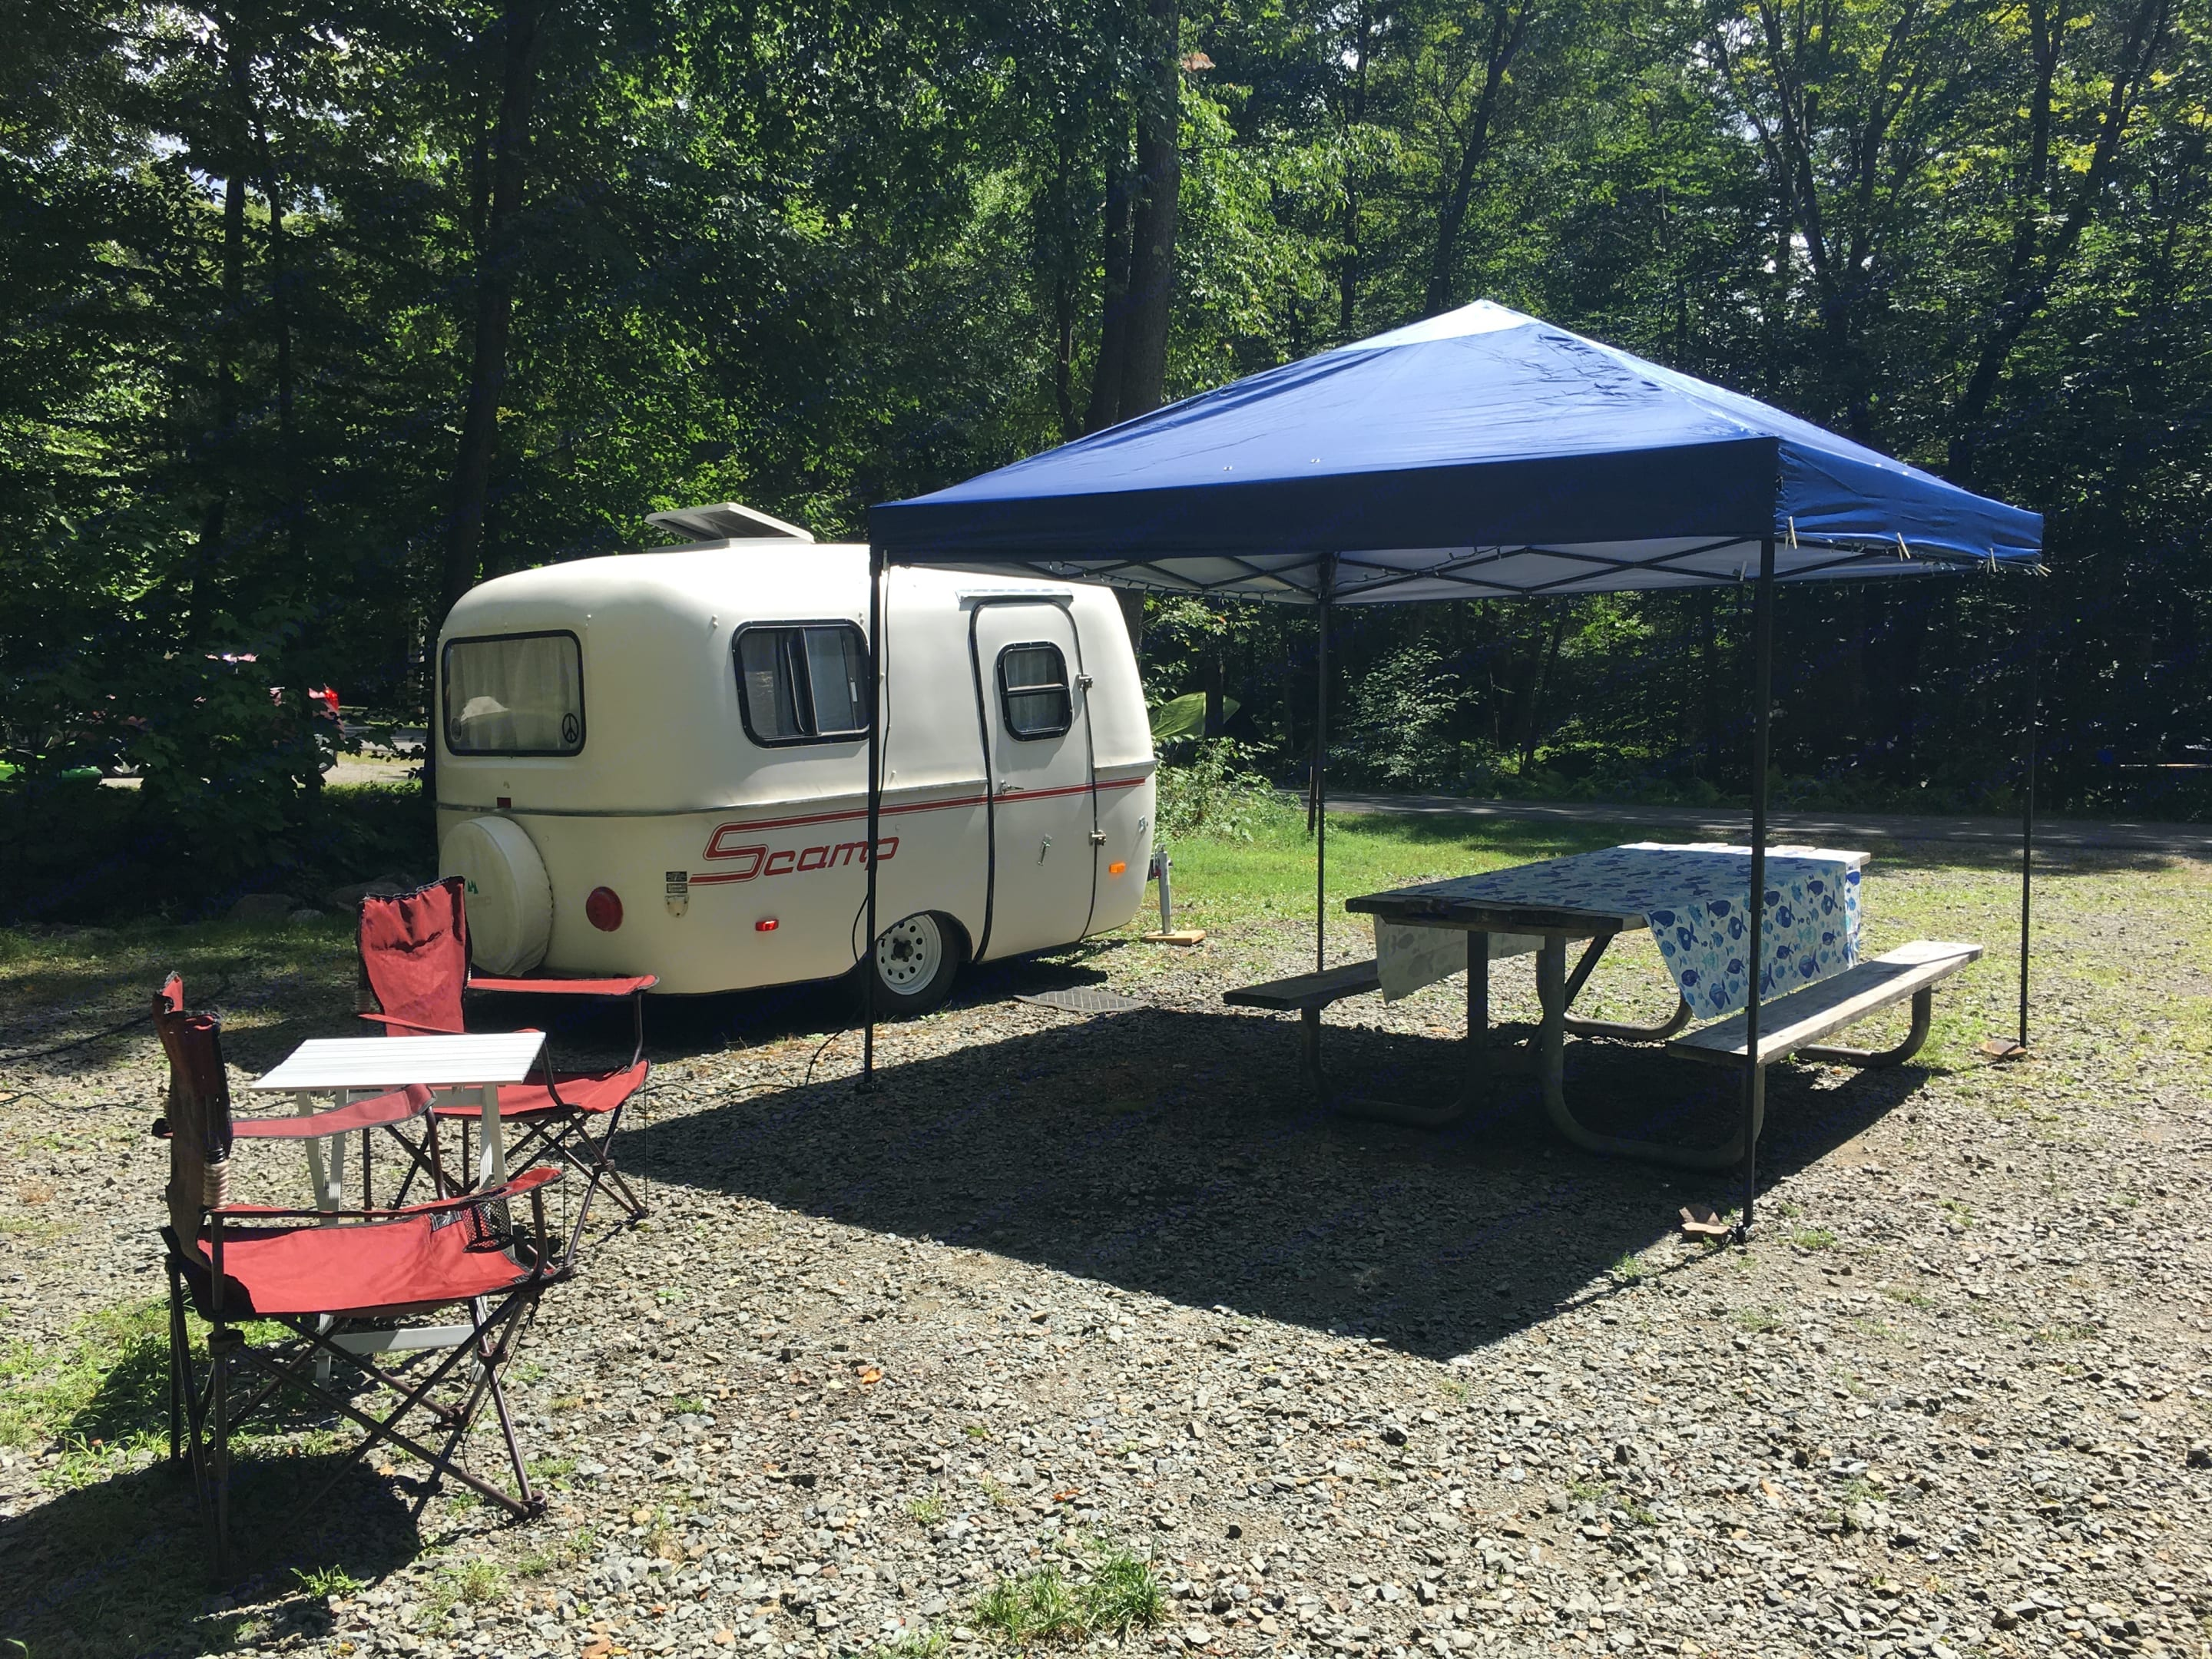 Scamp All American trailer with pop up tent, camp chairs and table cloth - all included in rental. Scamp 13' 1985